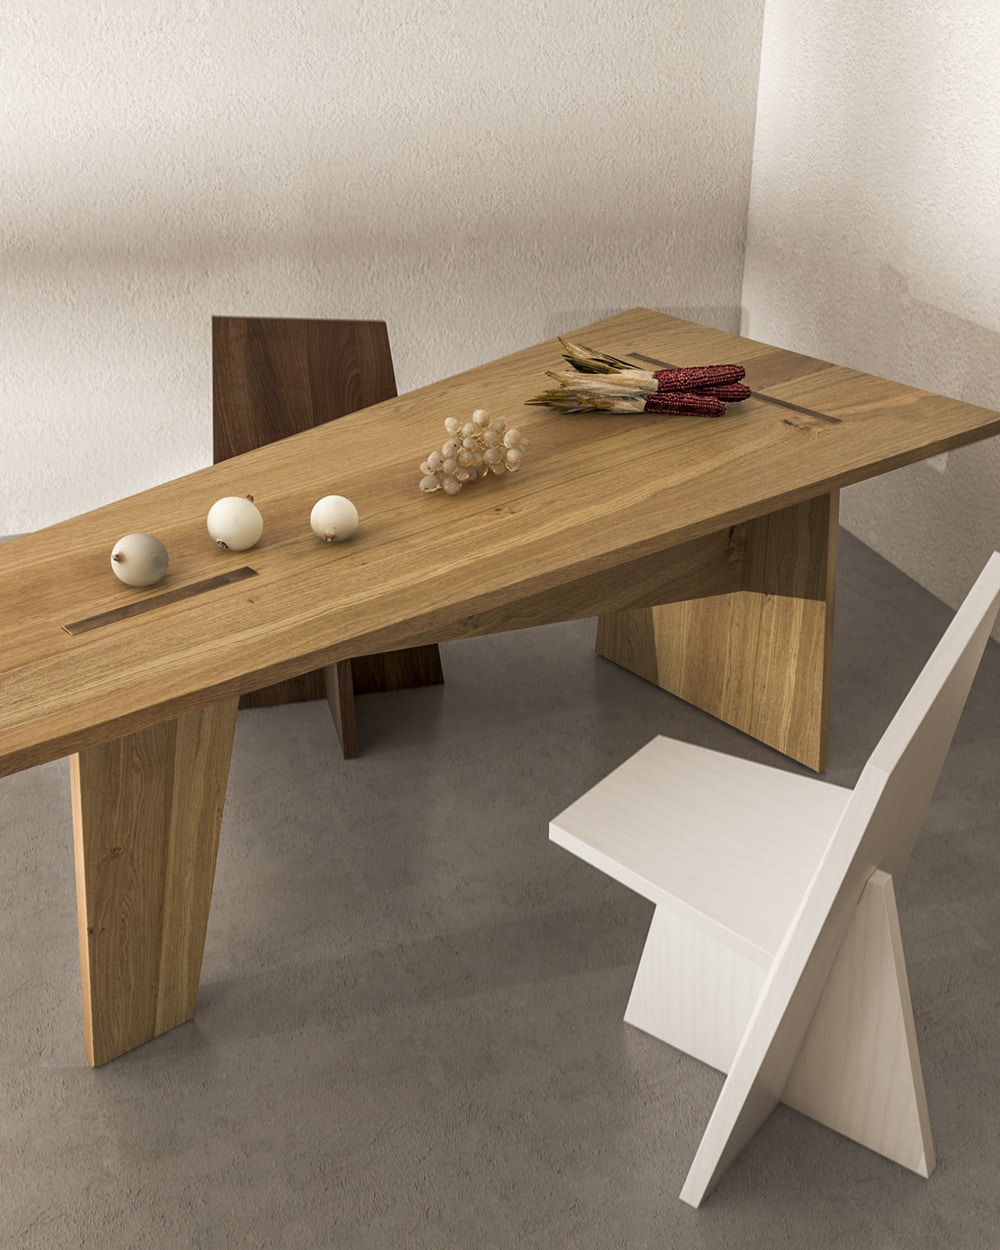 Nazara_Lazaro_Crooked_Dining_Table_1